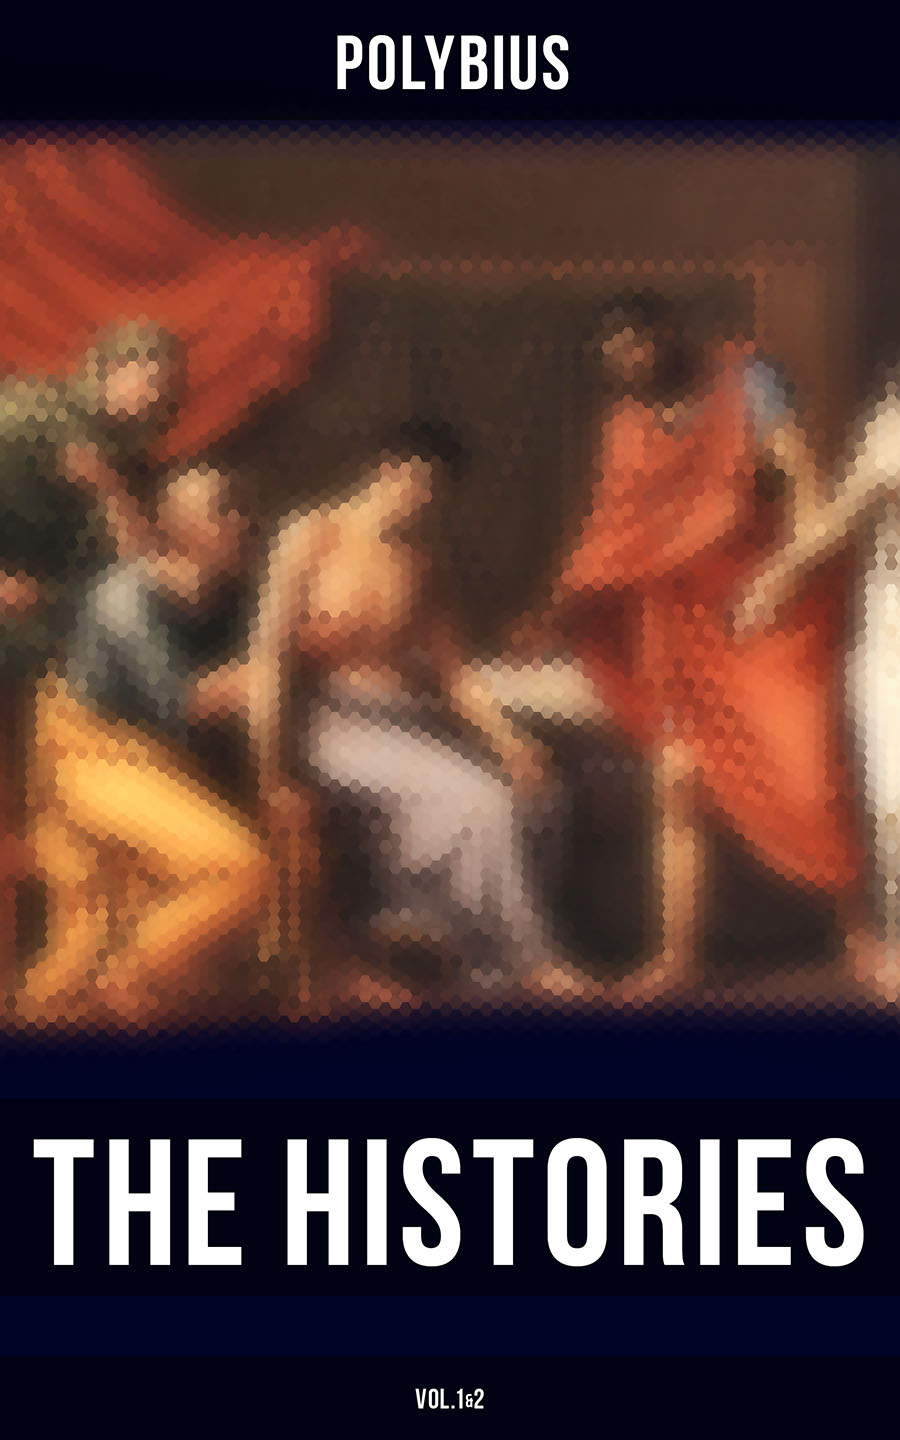 Polybius The Histories of Polybius (Vol.1&2) histories